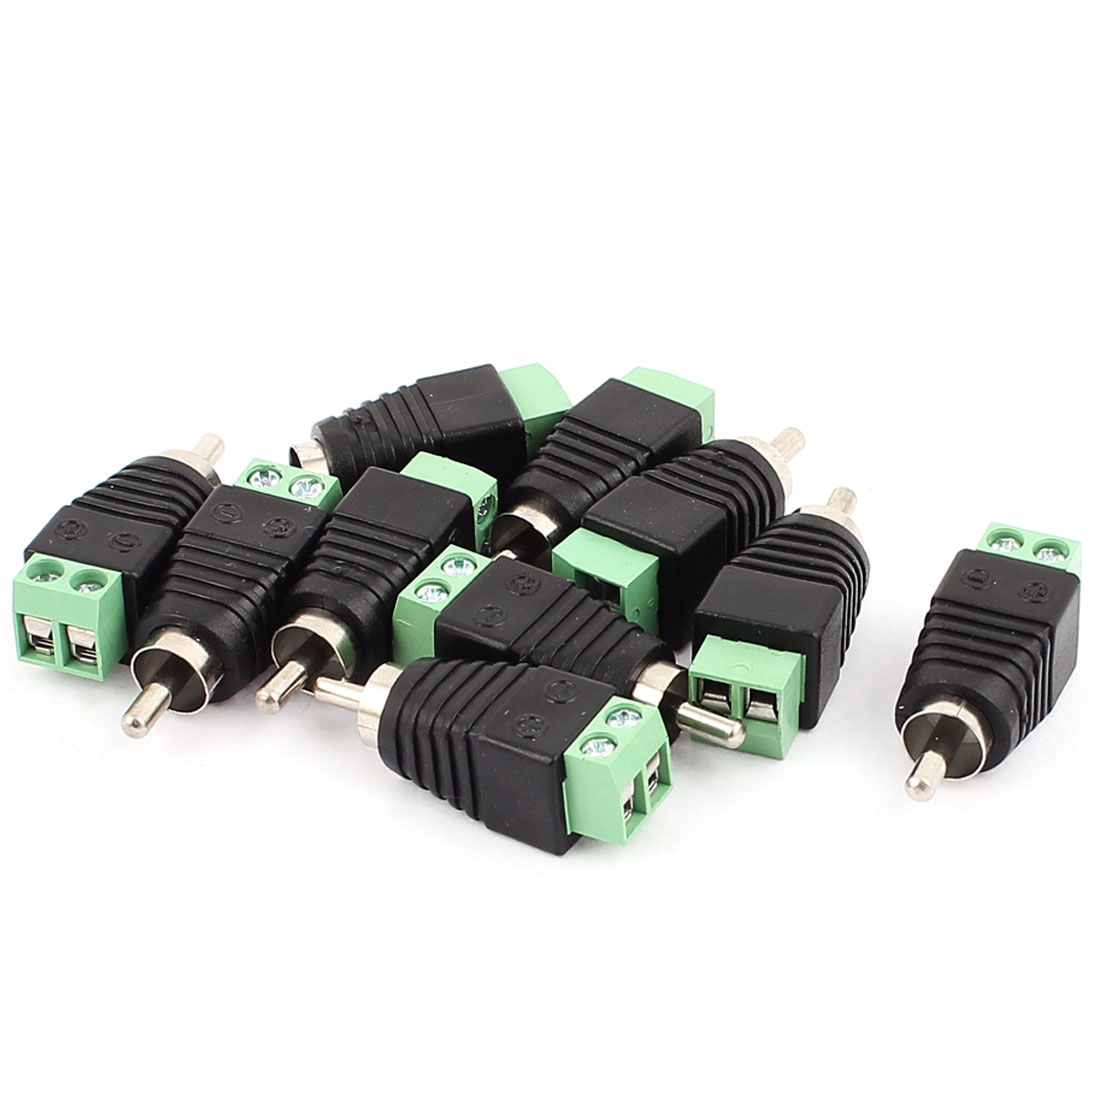 10 Pcs Speaker RCA Wire to AV Phono Male RCA Connector Jack Adapter